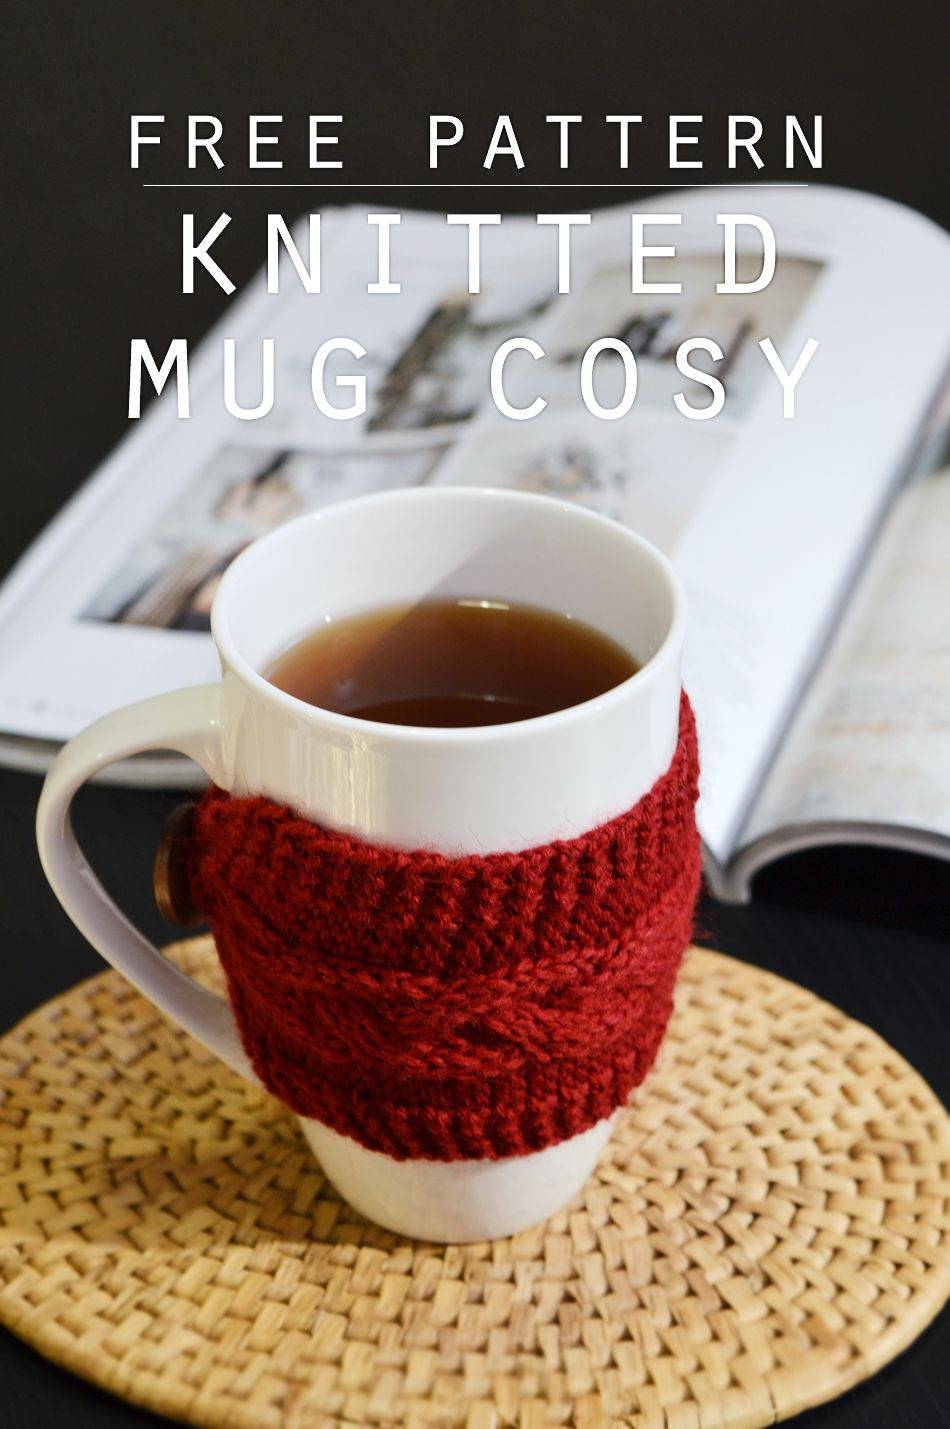 Free pattern for a braided cable mug cosy | Crafting Fingers ...